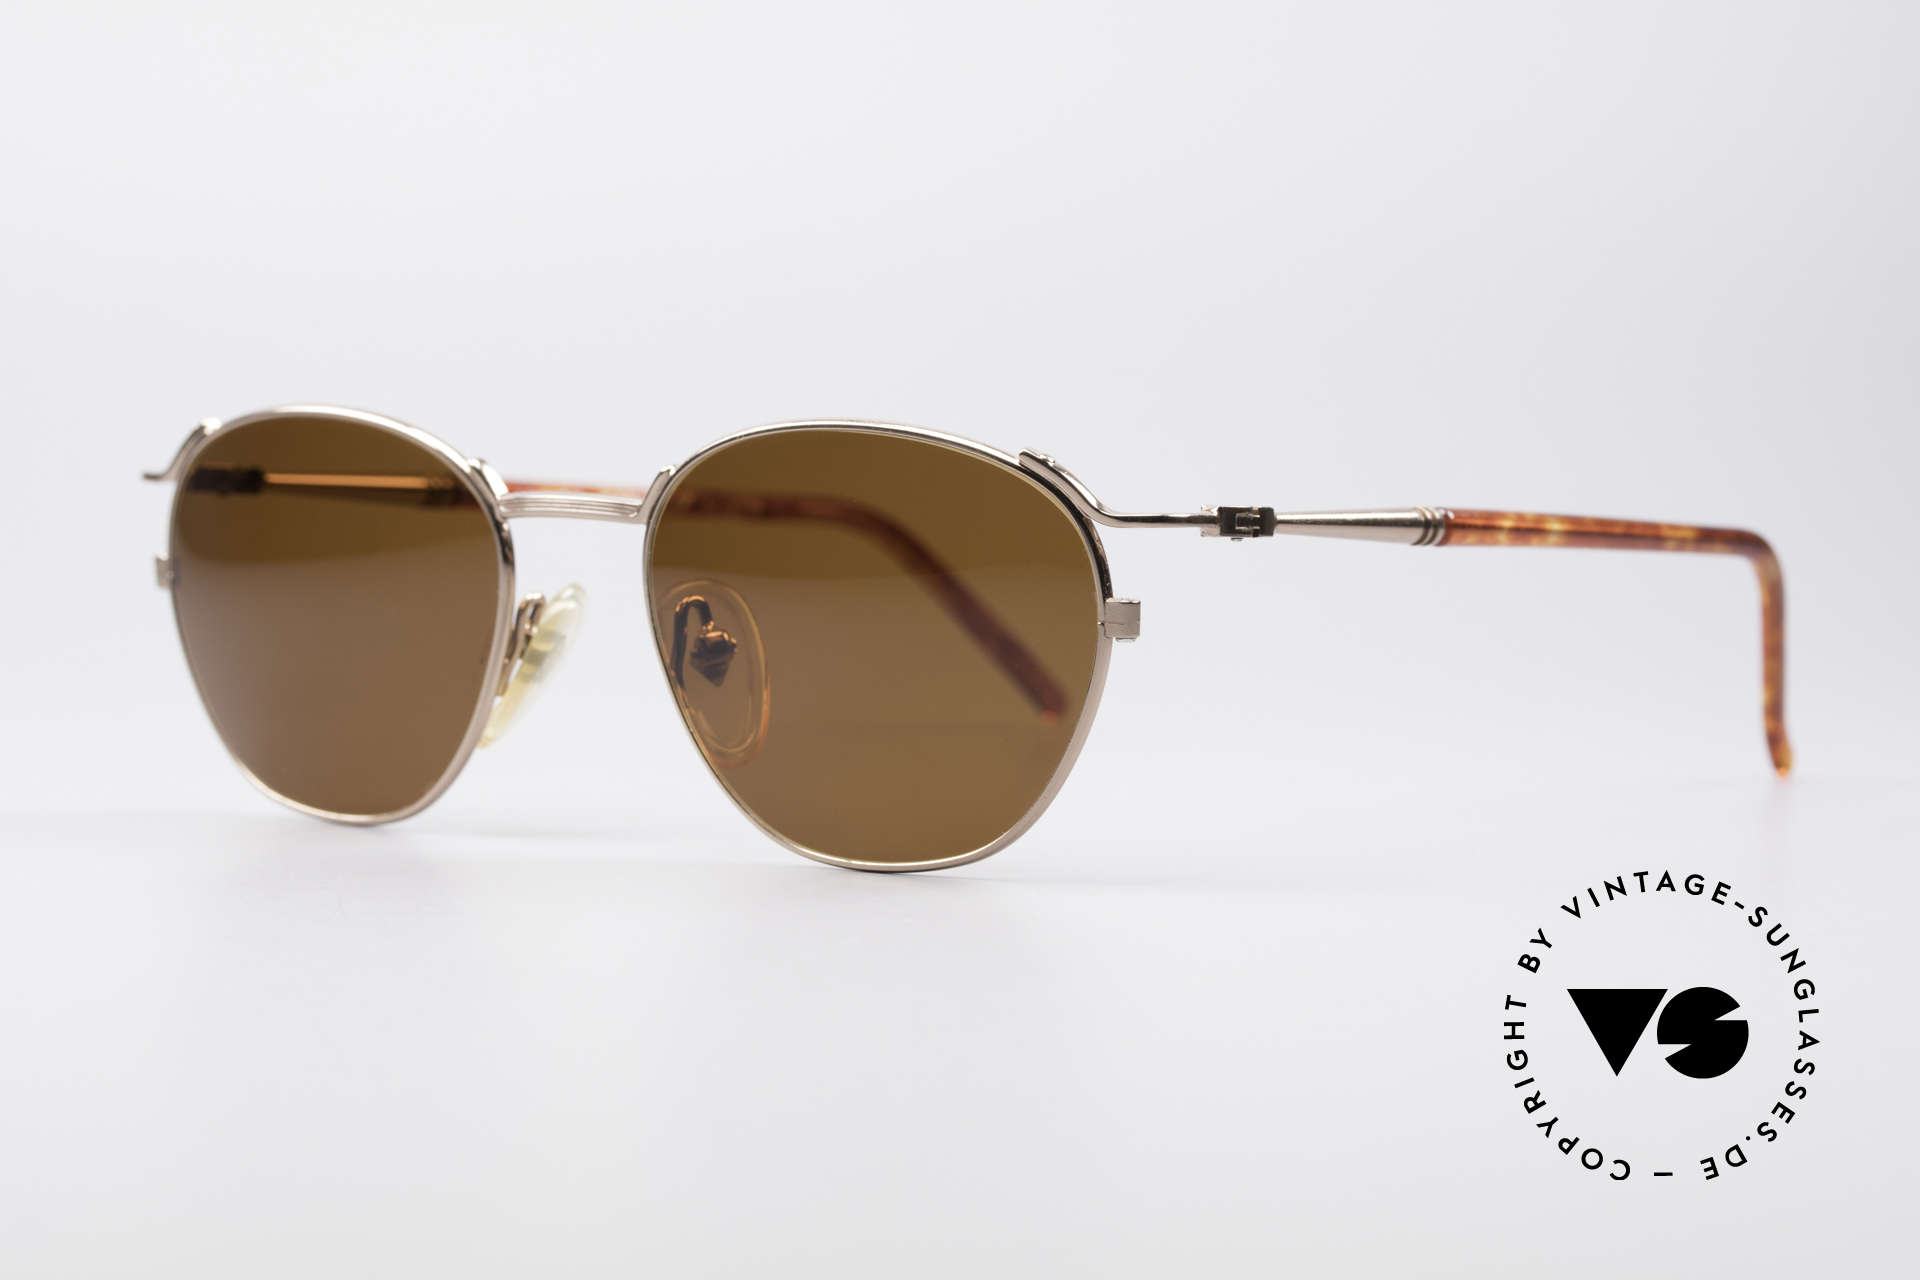 Jean Paul Gaultier 57-2276 True Vintage 90's Shades, nevertheless, with subtle details (typically JPG), Made for Men and Women